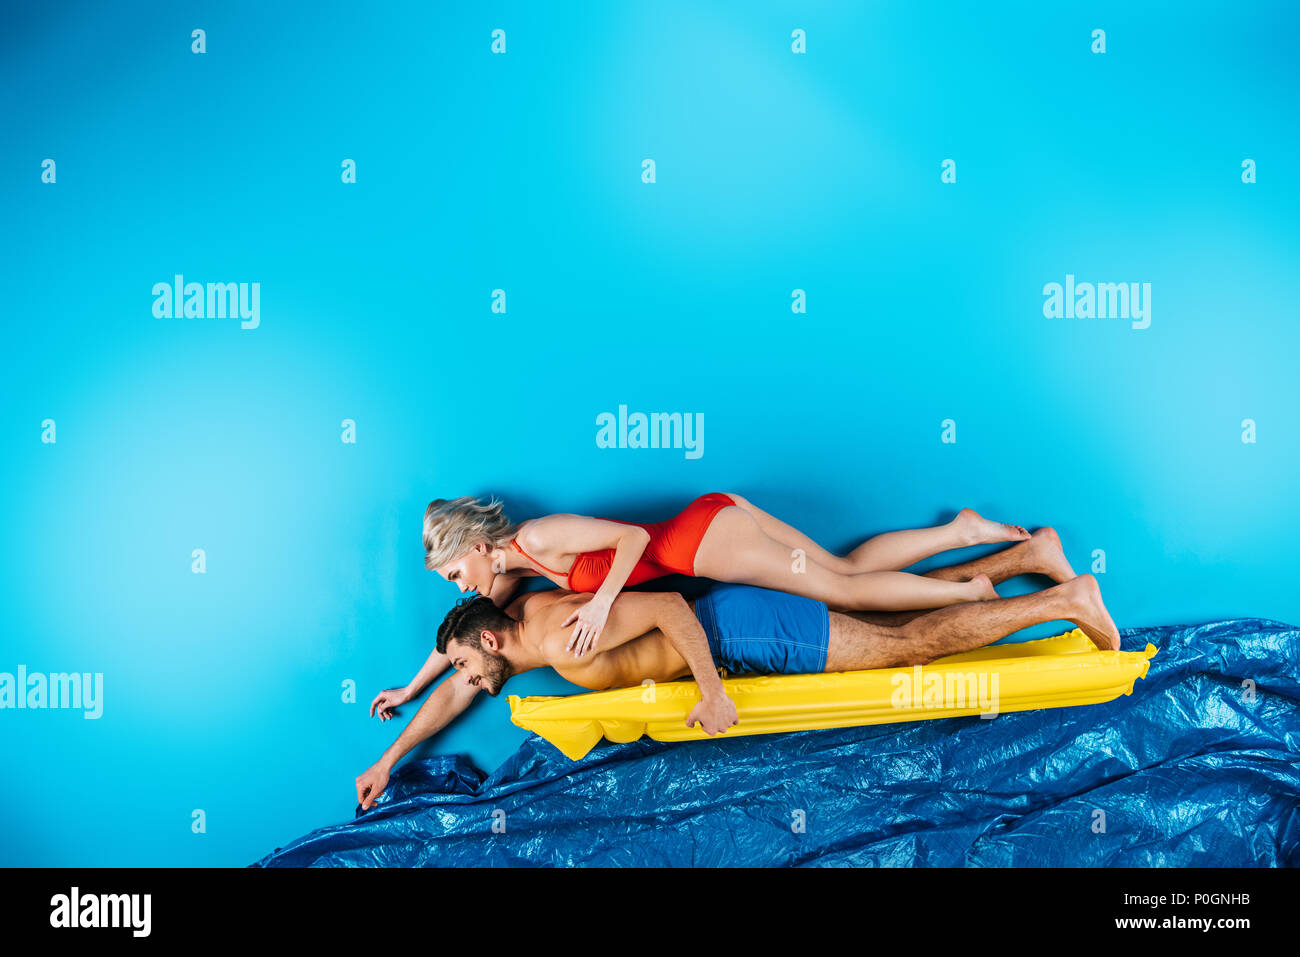 young couple in swimwear swimming on inflatable mattress on blue - Stock Image